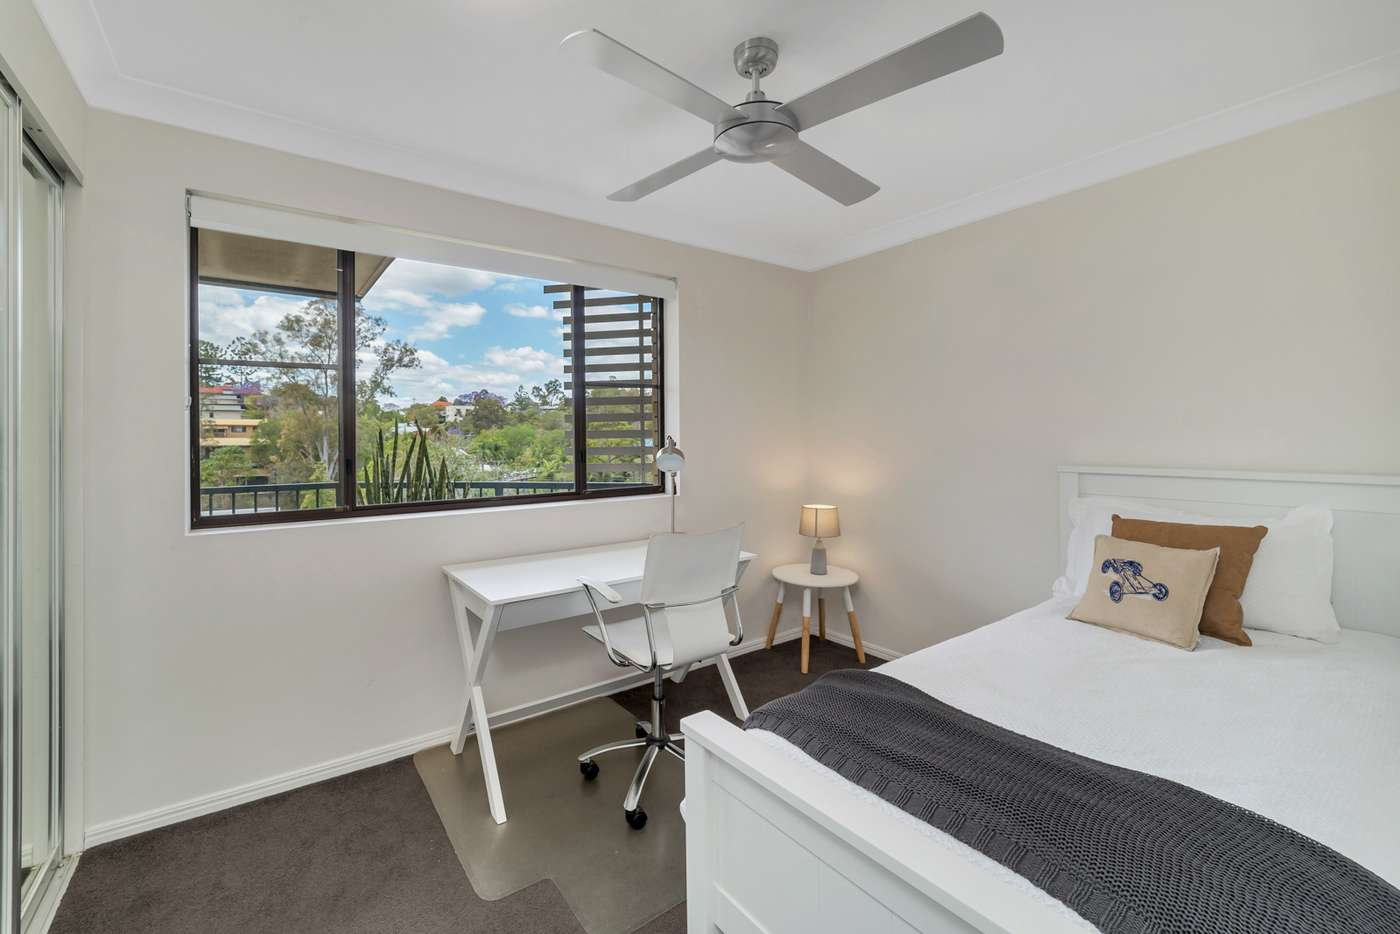 Fifth view of Homely unit listing, 9/29 Bellevue Terrace, St Lucia QLD 4067